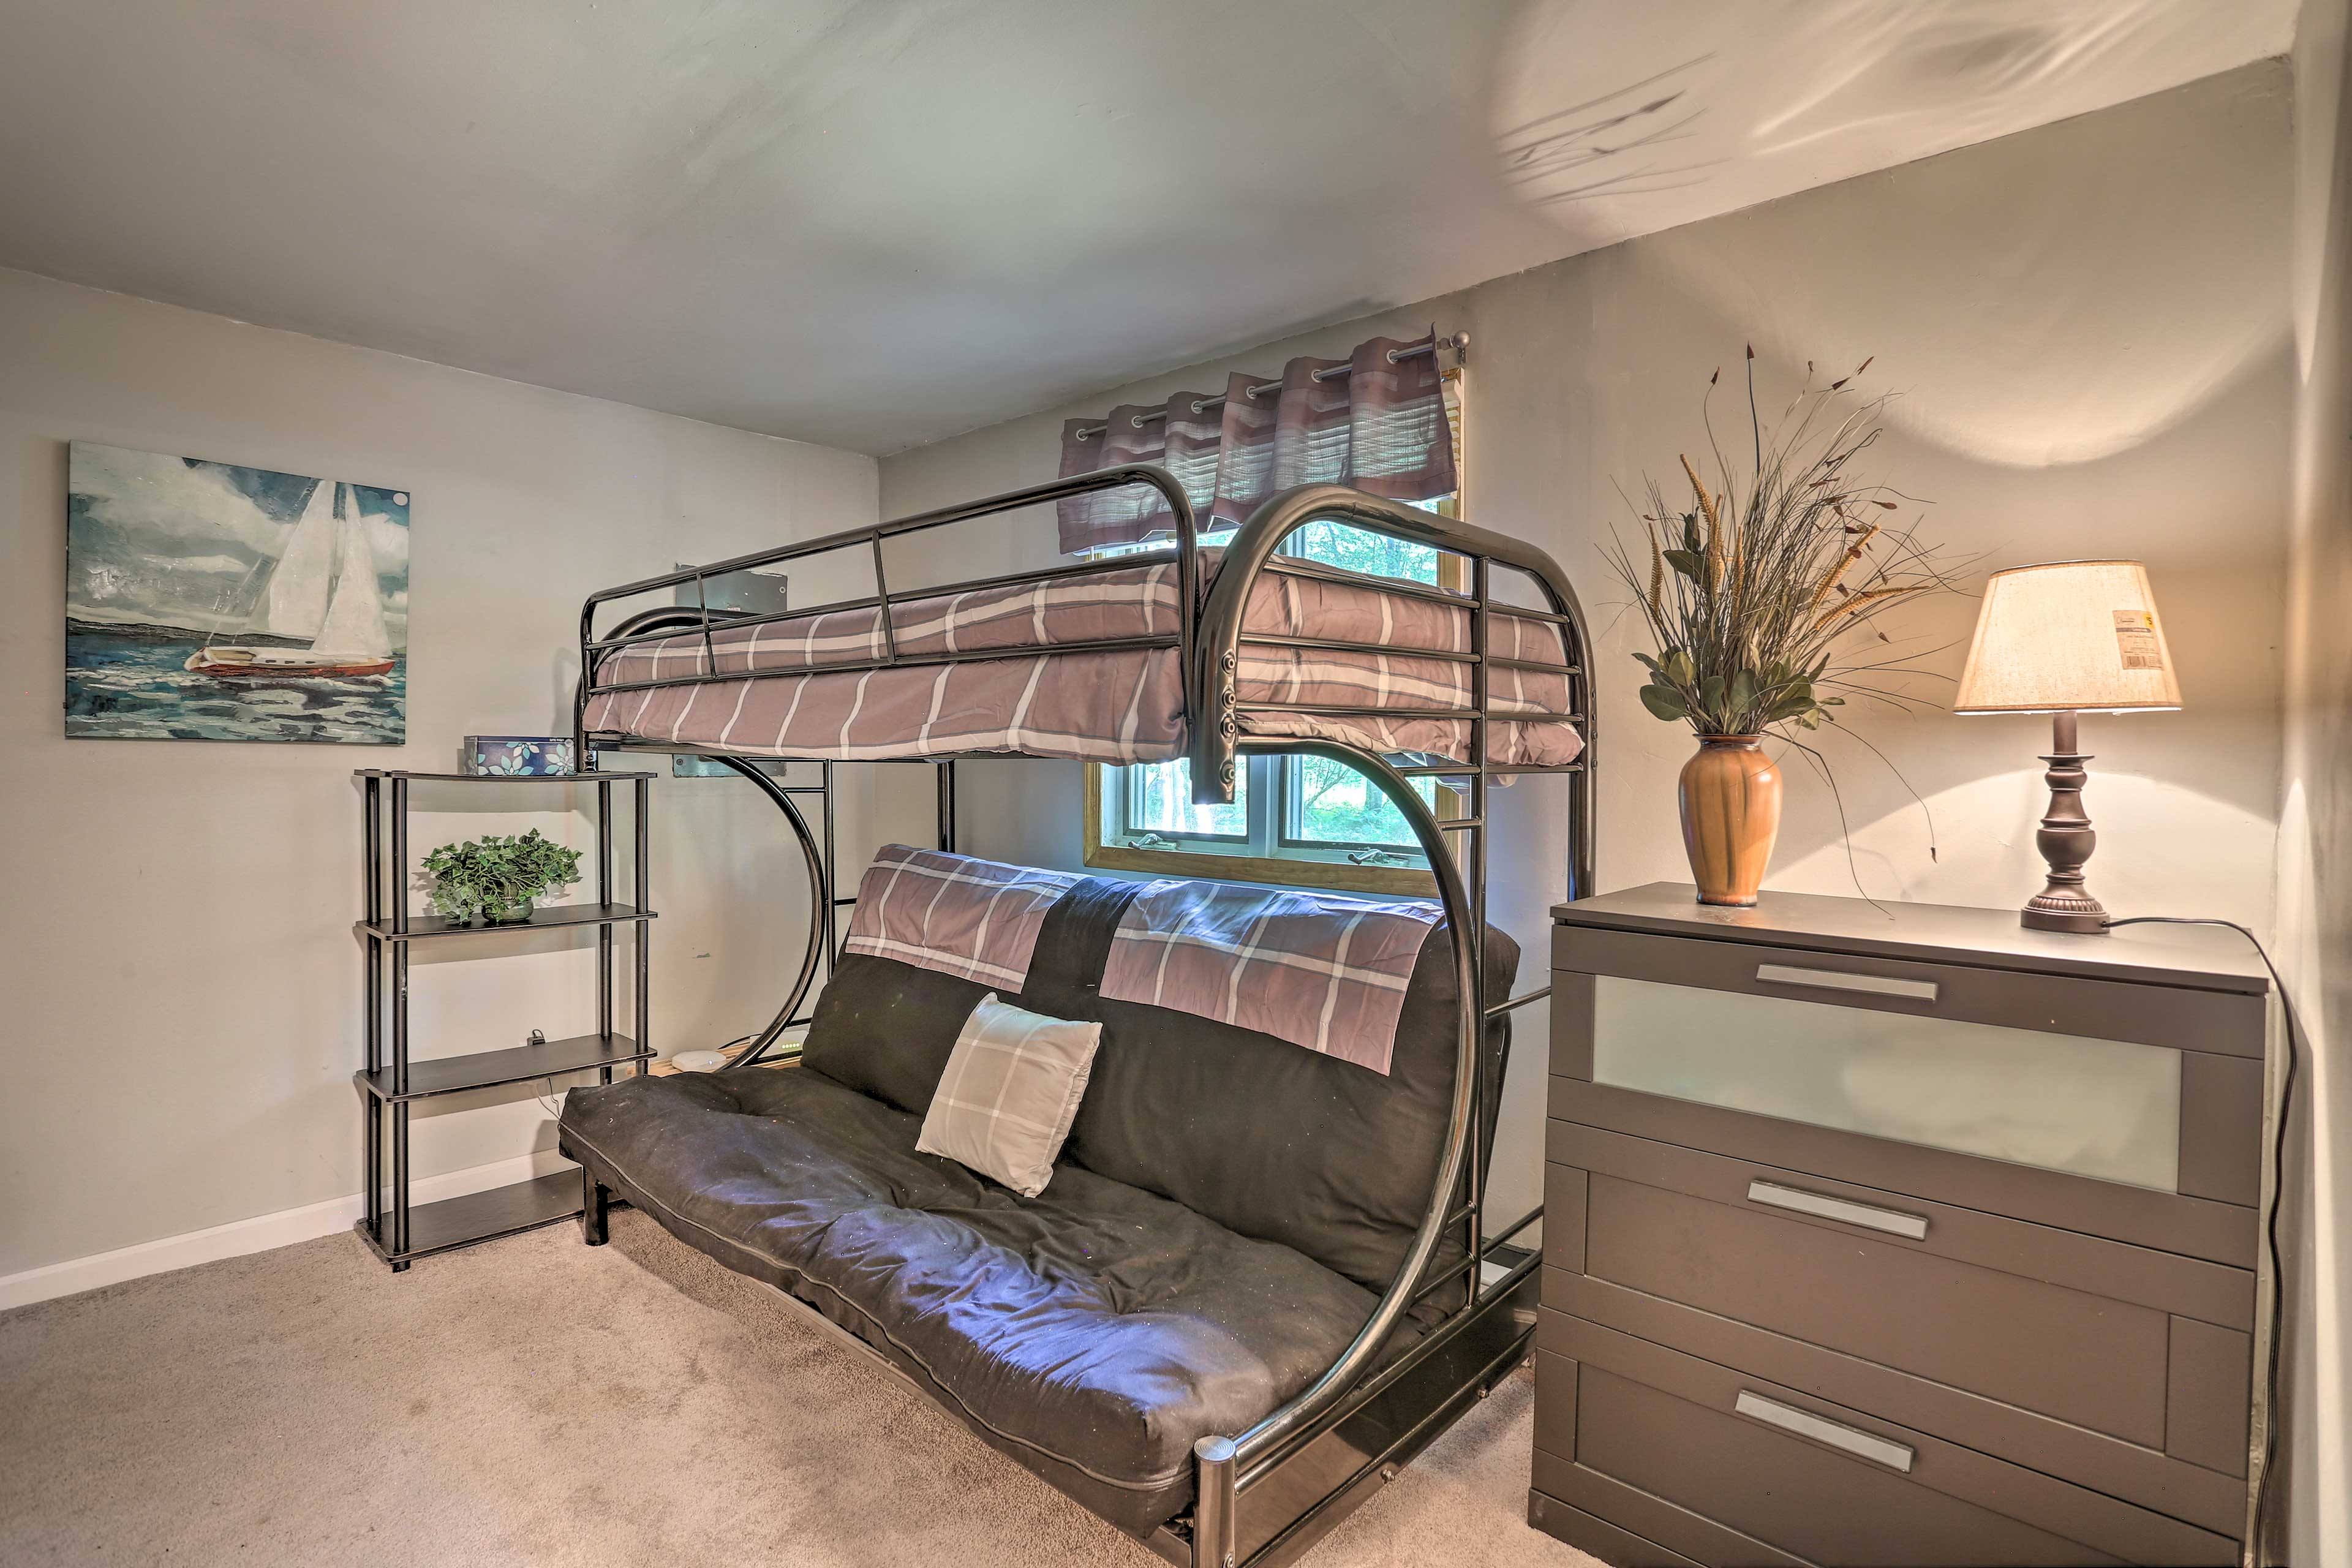 The second bedroom features a twin/full bunk bed.